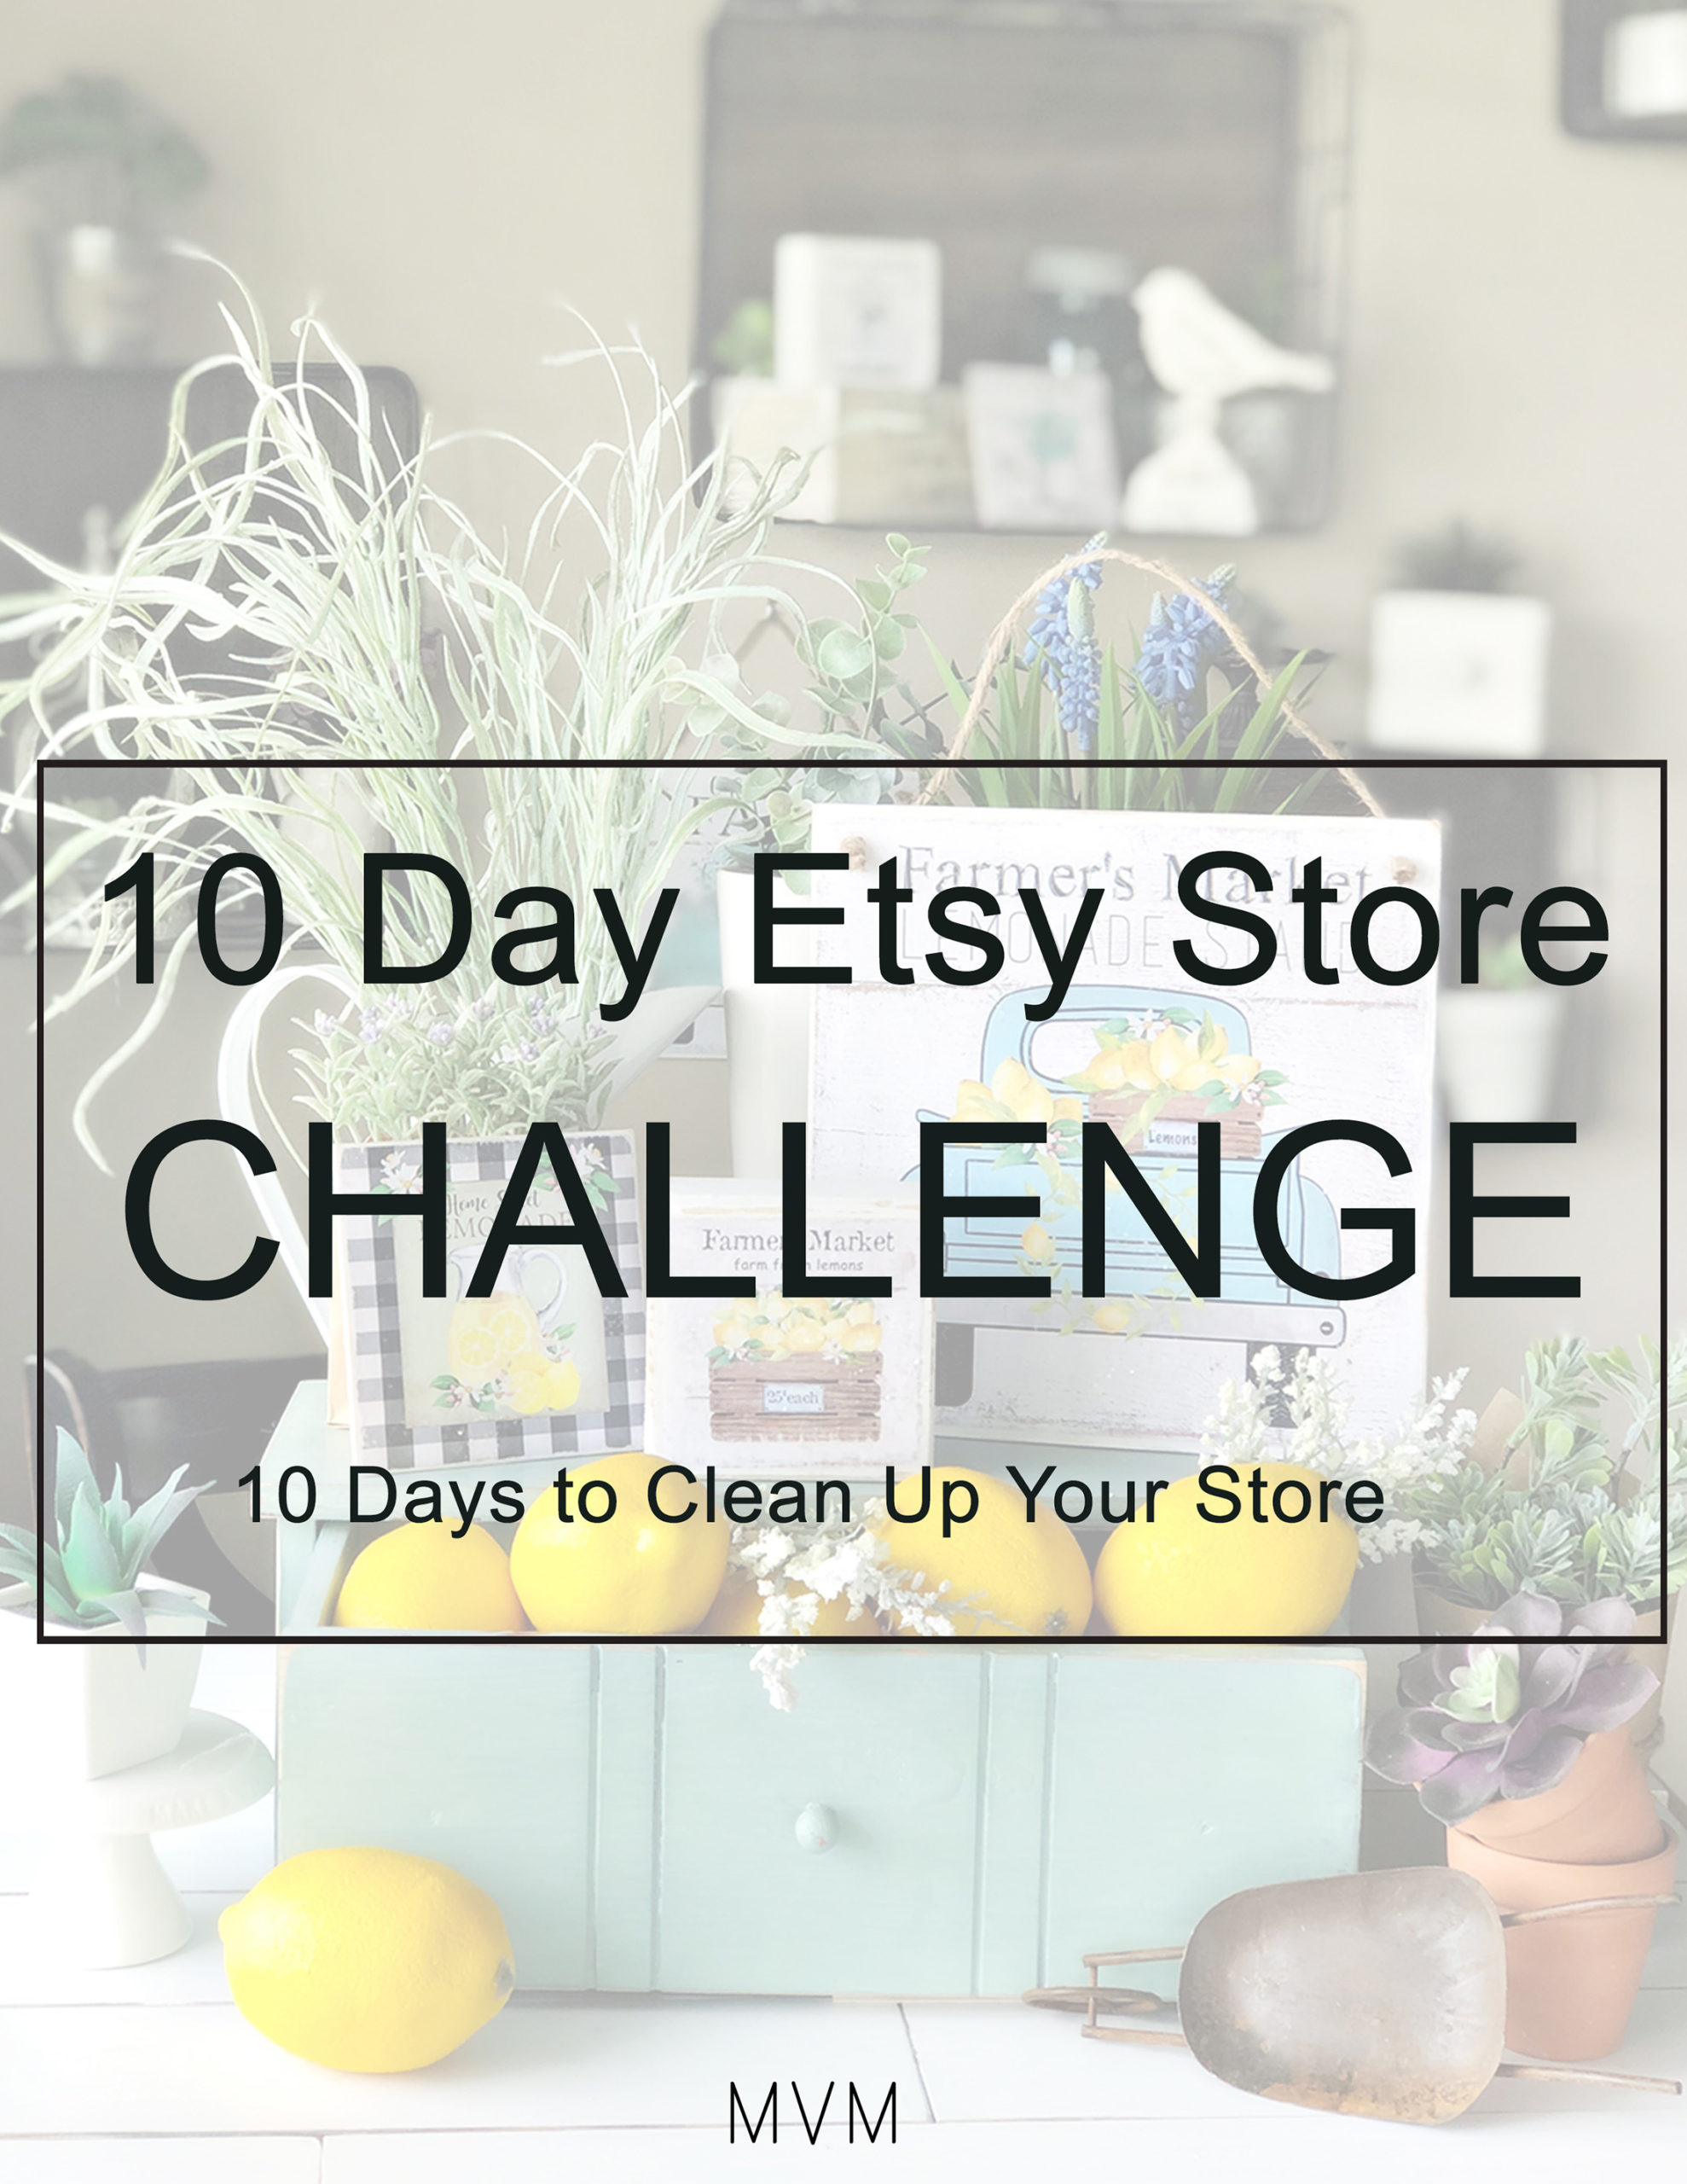 10 Day Etsy Store Challenge